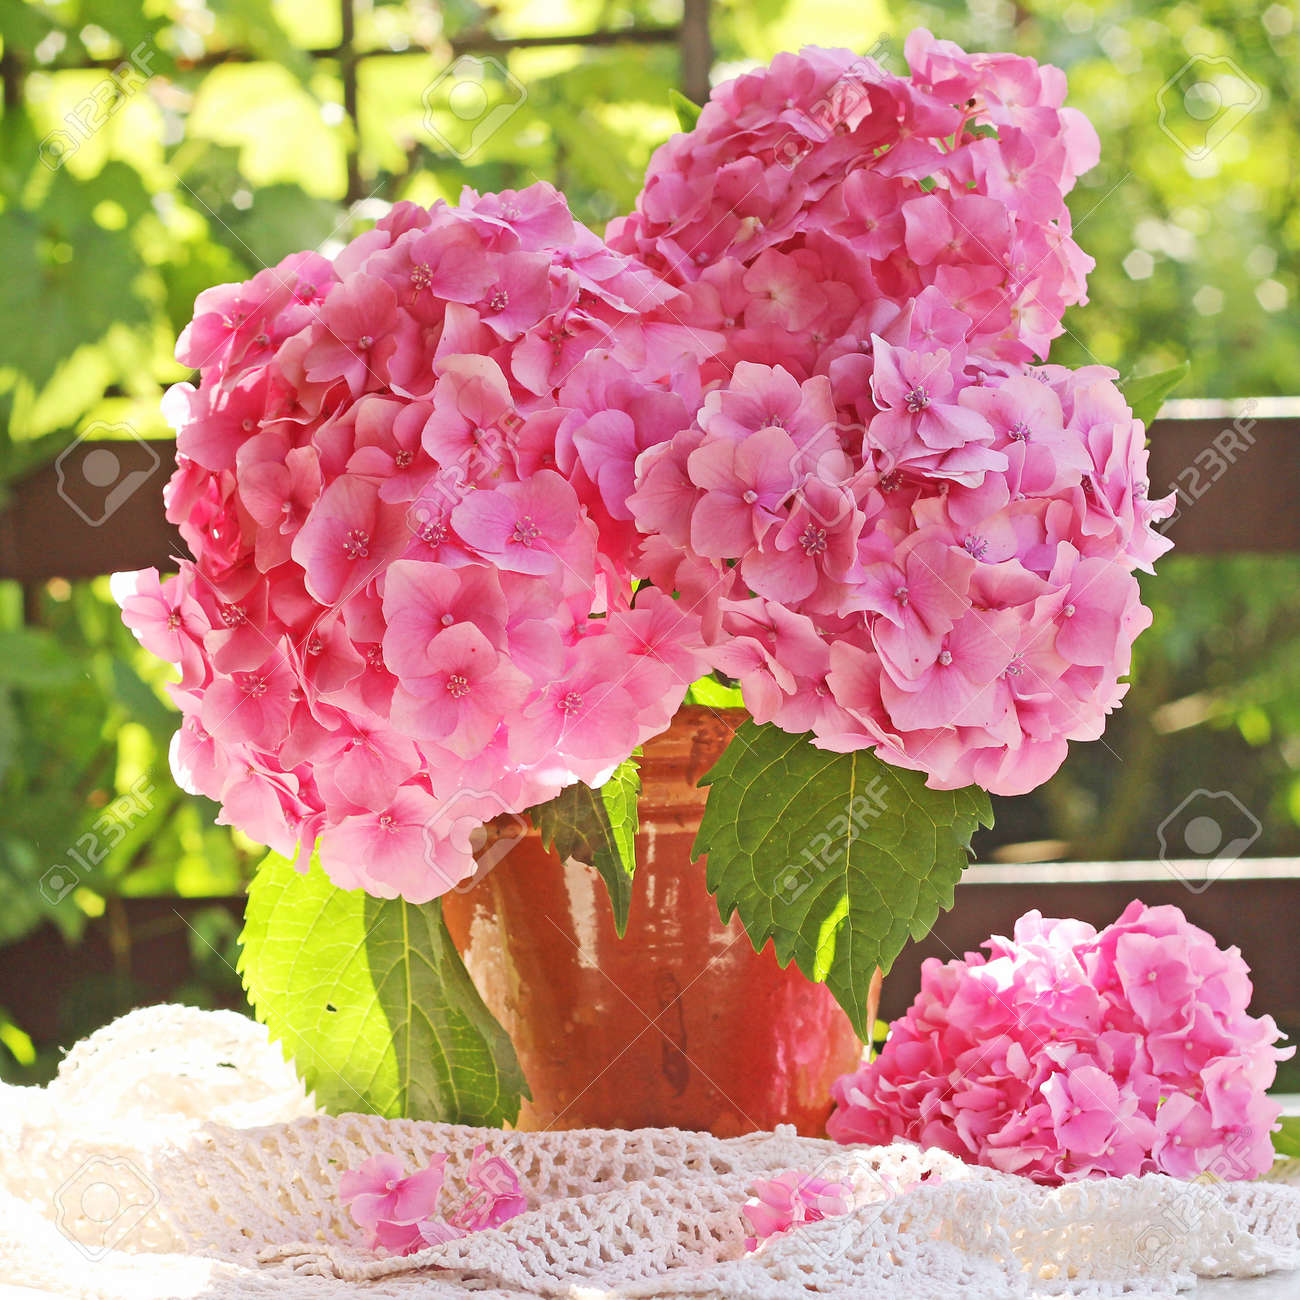 Hydrangea In Pot Stock Photo, Picture And Royalty Free Image. Image ...